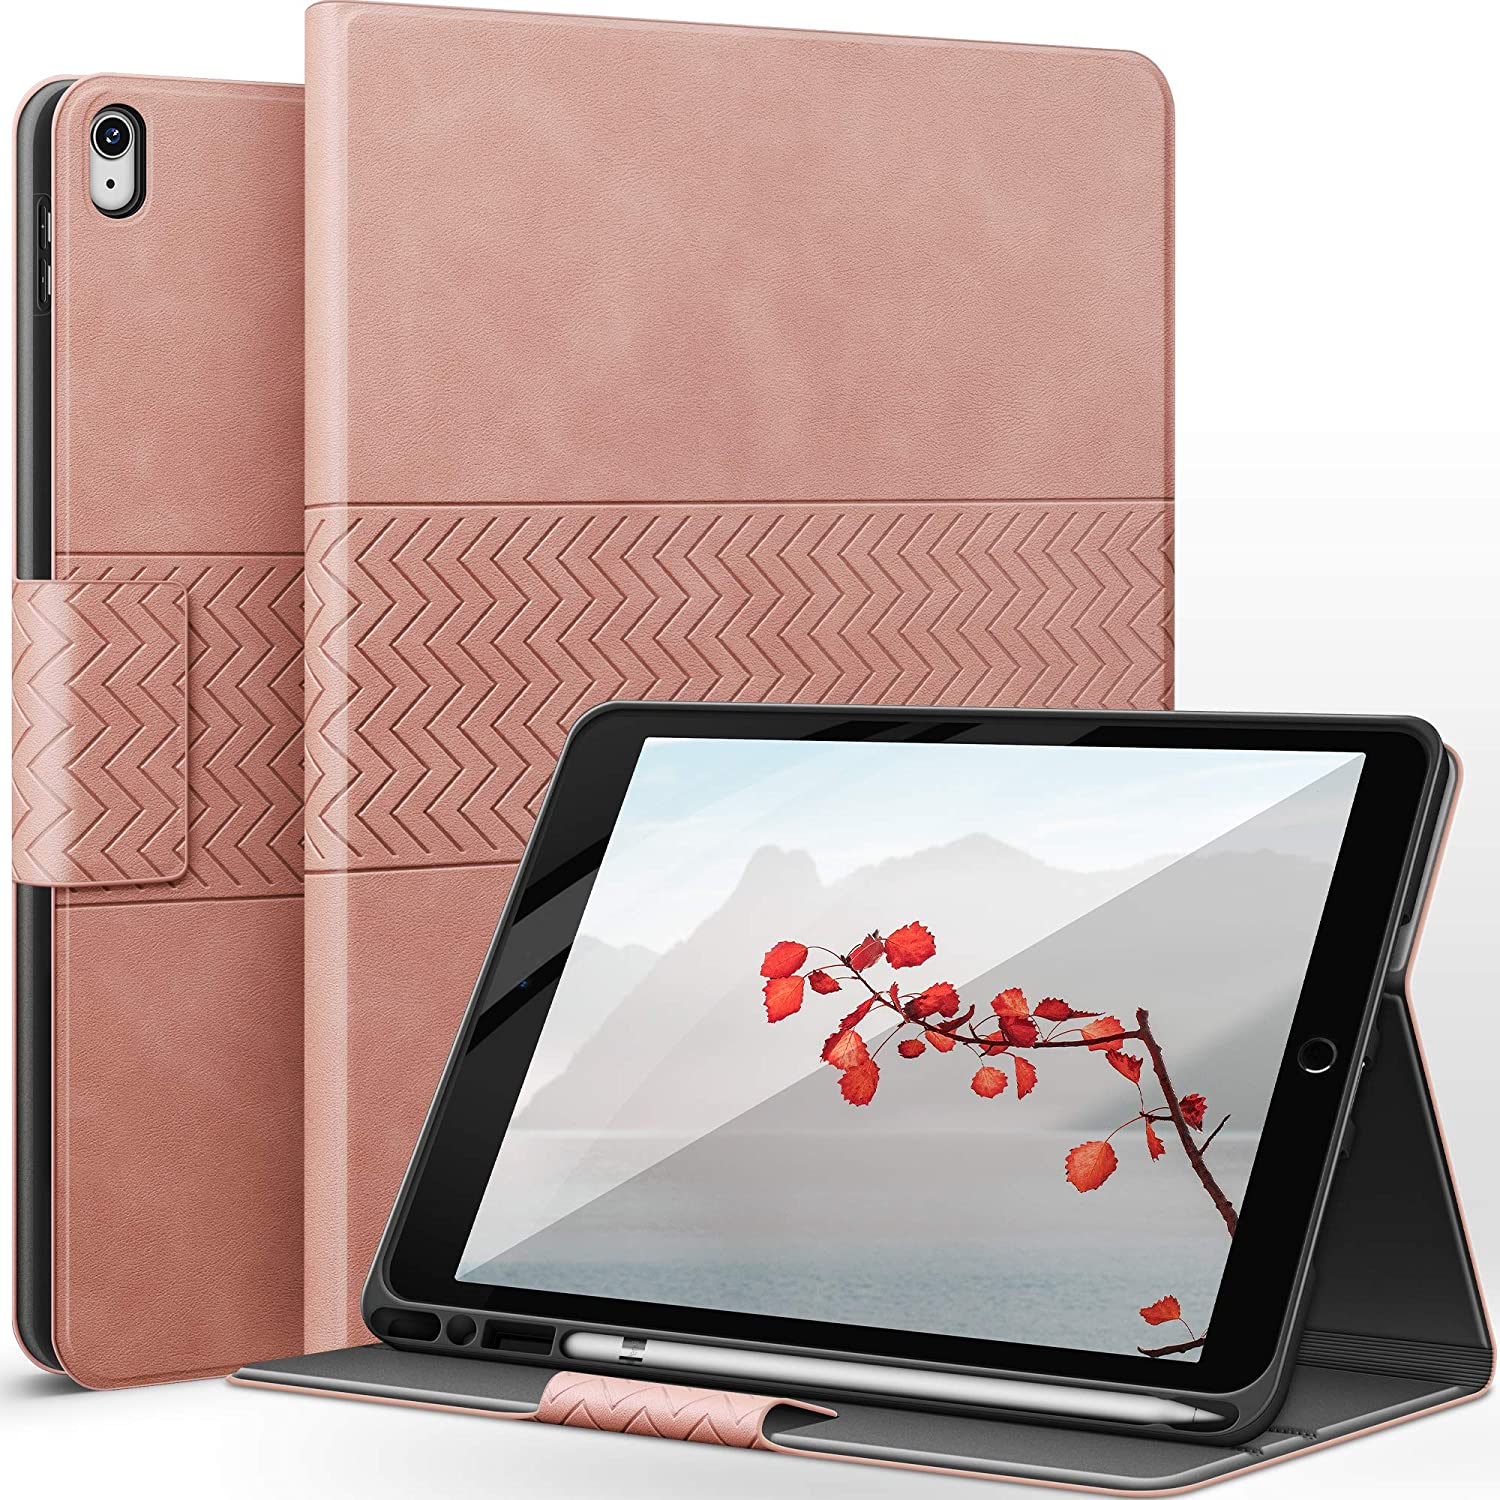 auaua iPad Air 3rd Generation Case/iPad Pro 10.5 Case with Built-in Apple Pencil Holder Auto Sleep/Wake Function Vegan Leather Smart Cover for iPad Air 3 10.5 Inch 2019/iPad Pro 10.5 2017 (Pink)